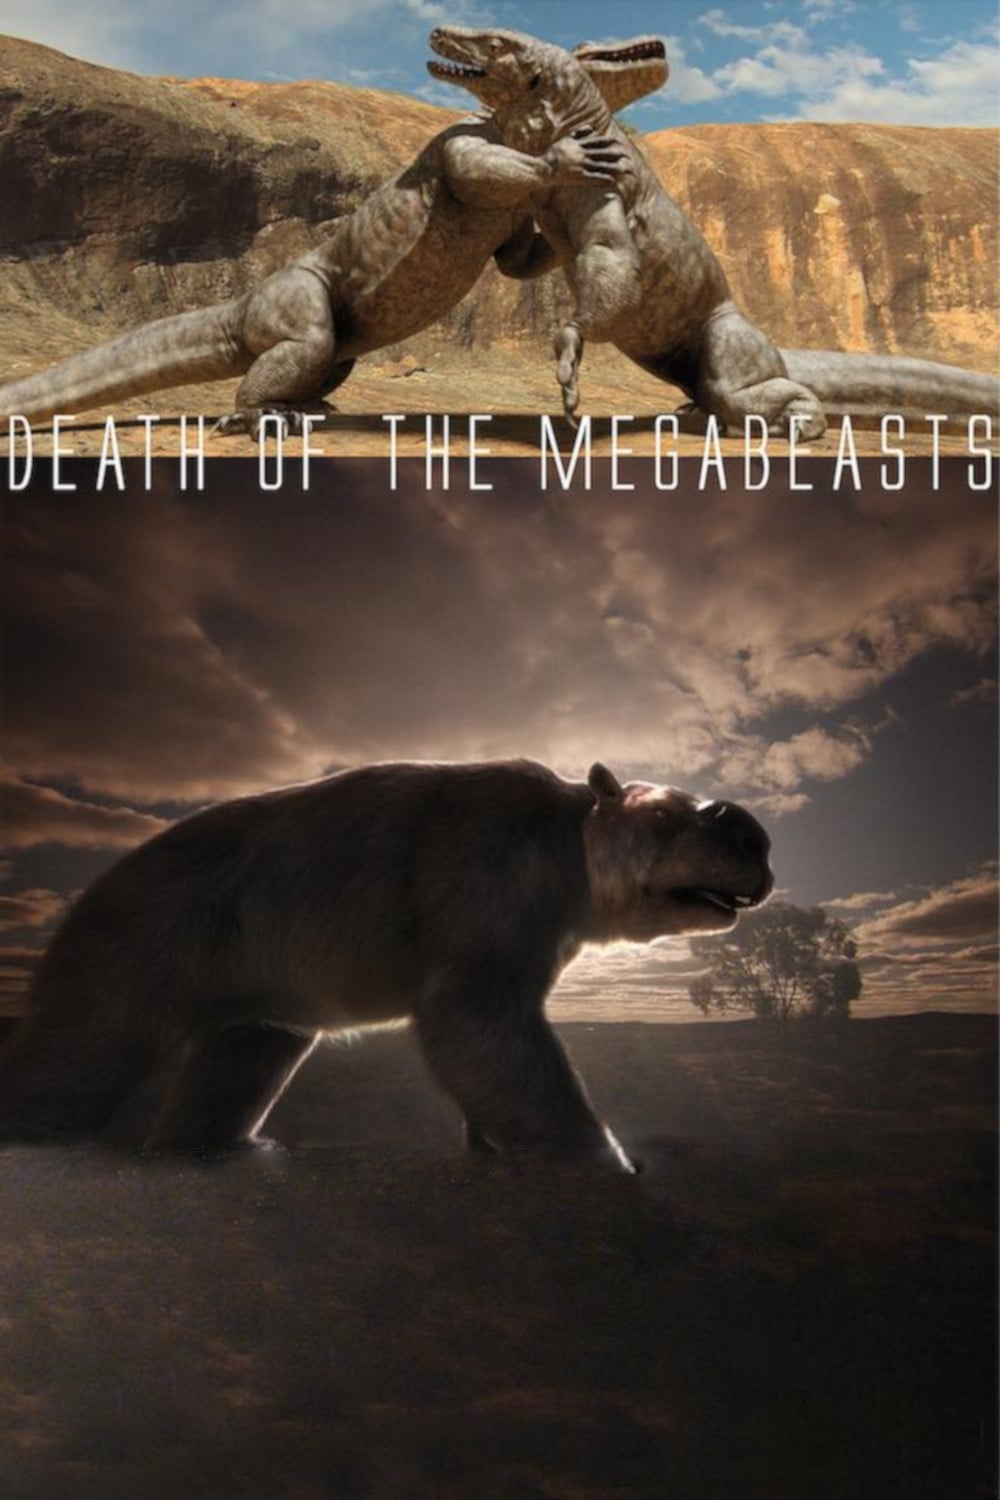 Death of the Megabeasts (2009)